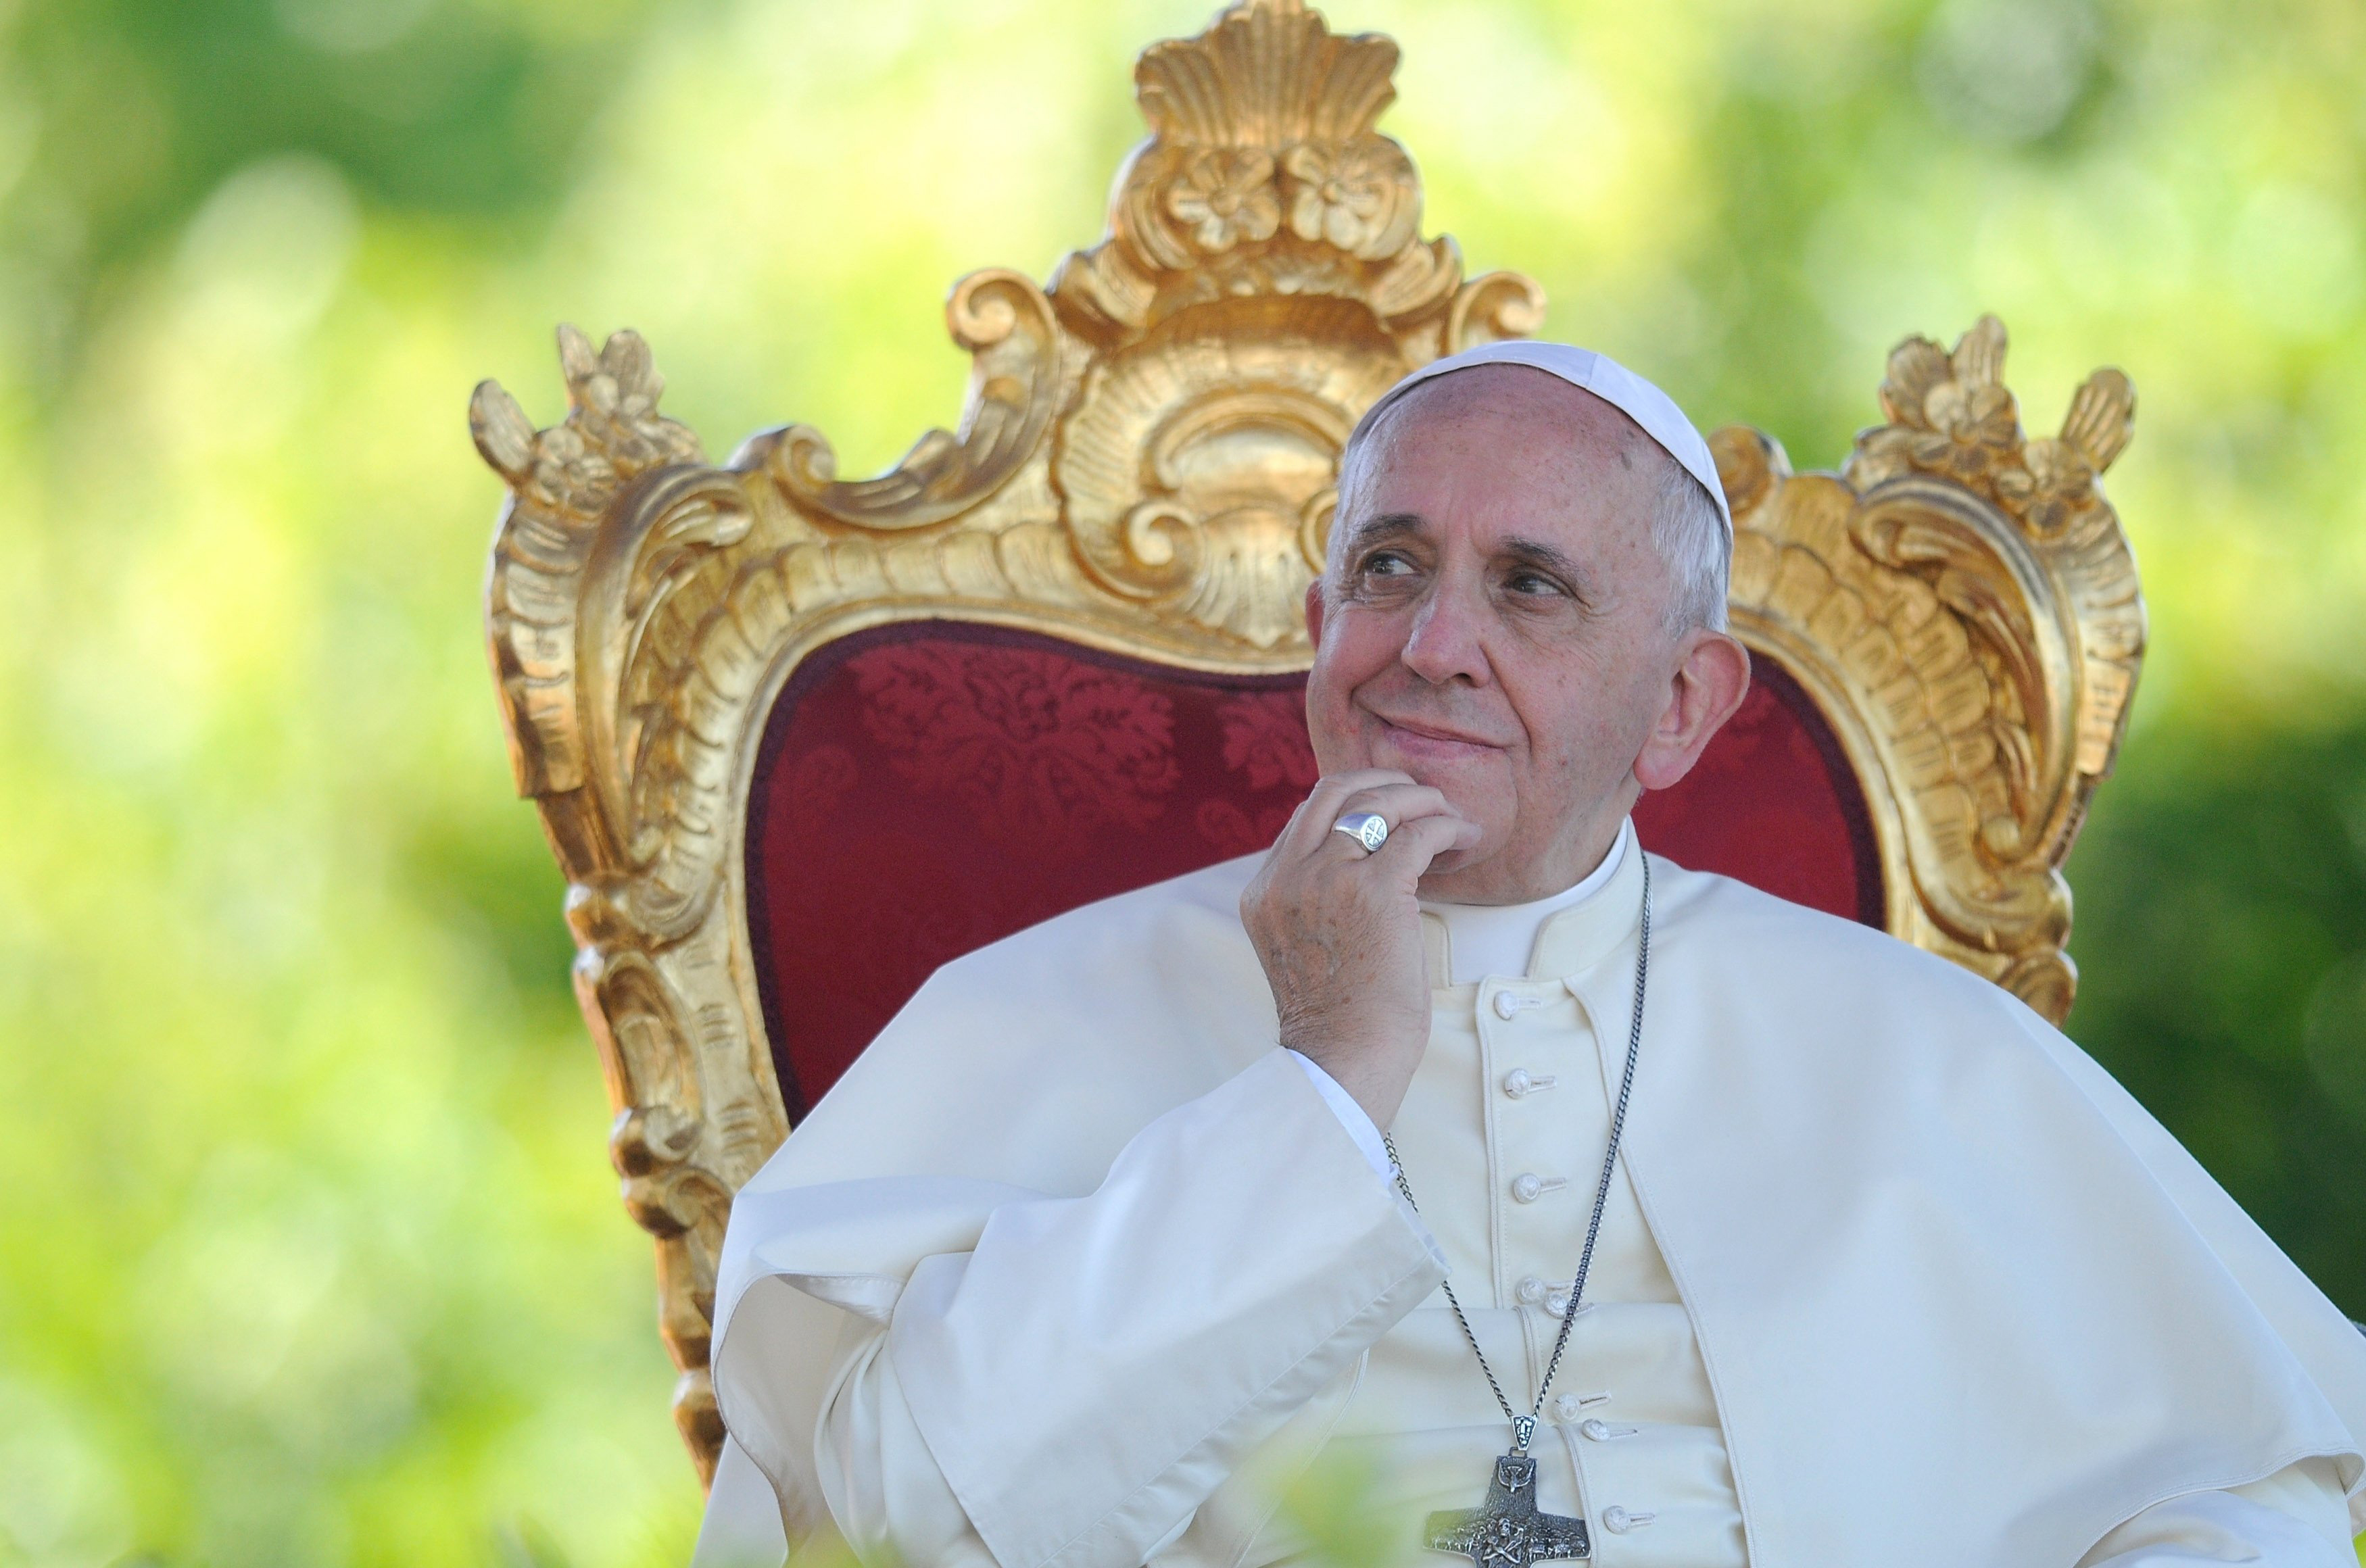 Pope Francis attends a meeting with young people at the Sanctuary of Castelpetroso in Campobasso, Italy on July 5, 2014.